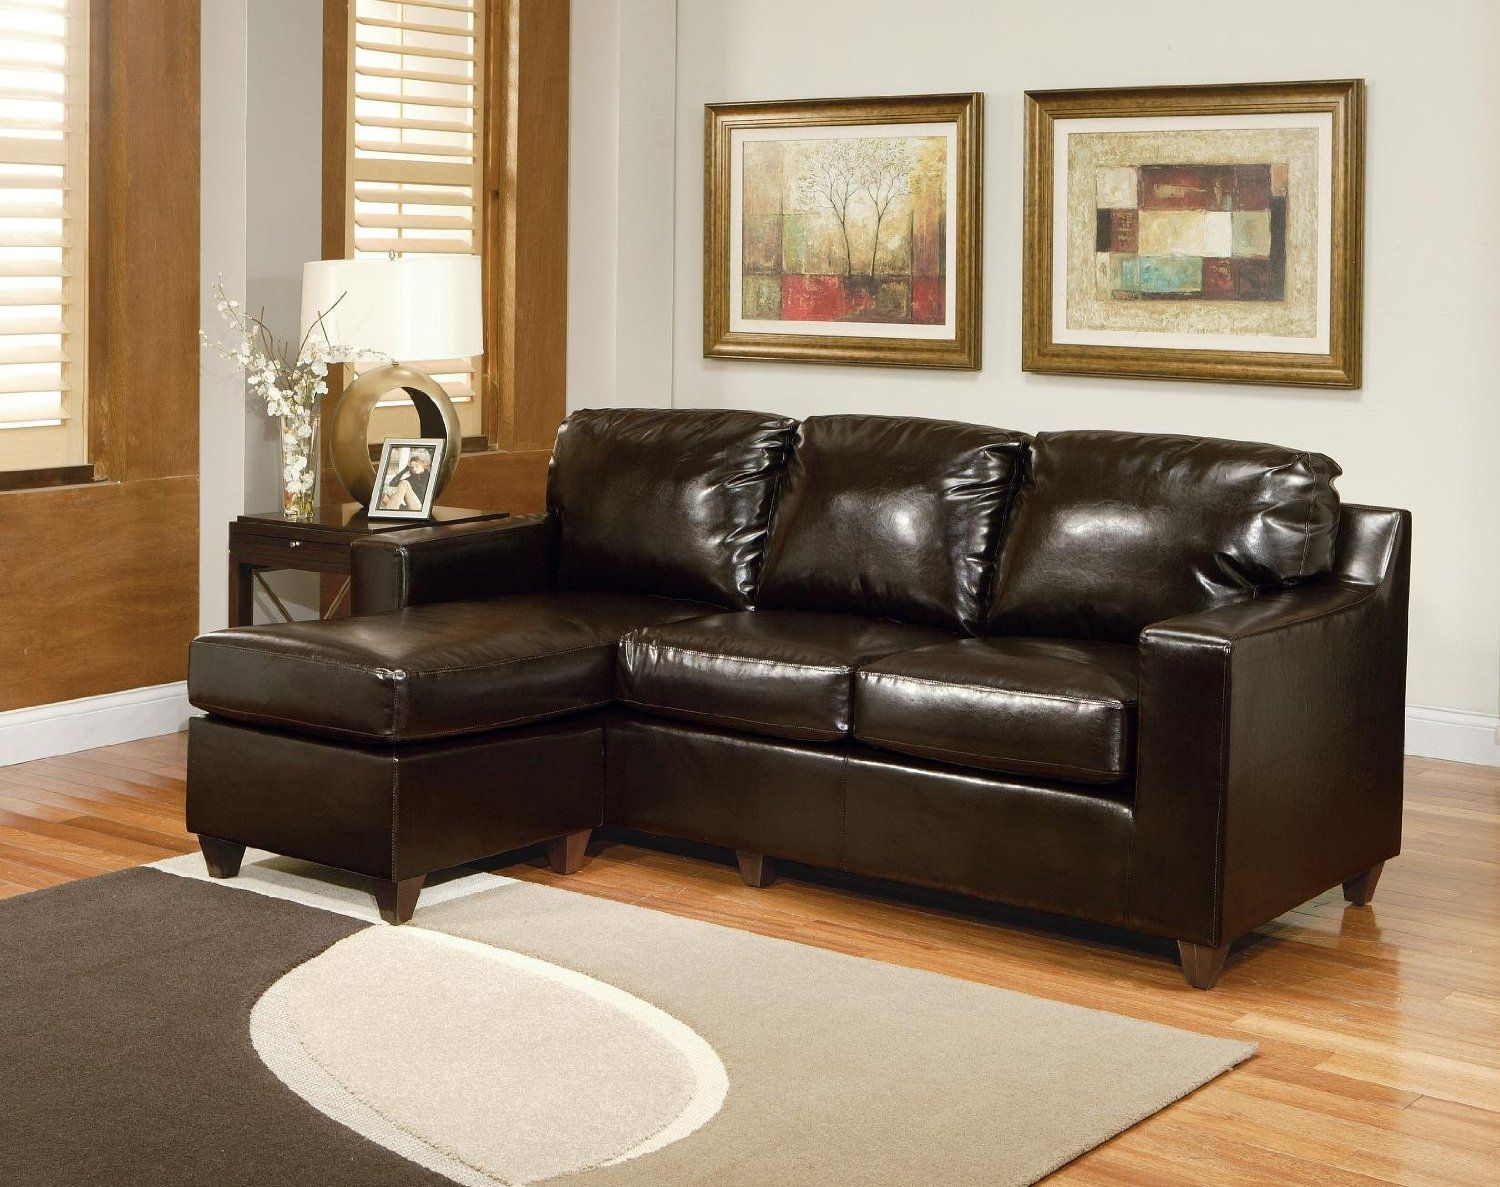 small space sectional sofa. Awesome Sectional Sofa For Small Spaces , Good 80 Modern Space A